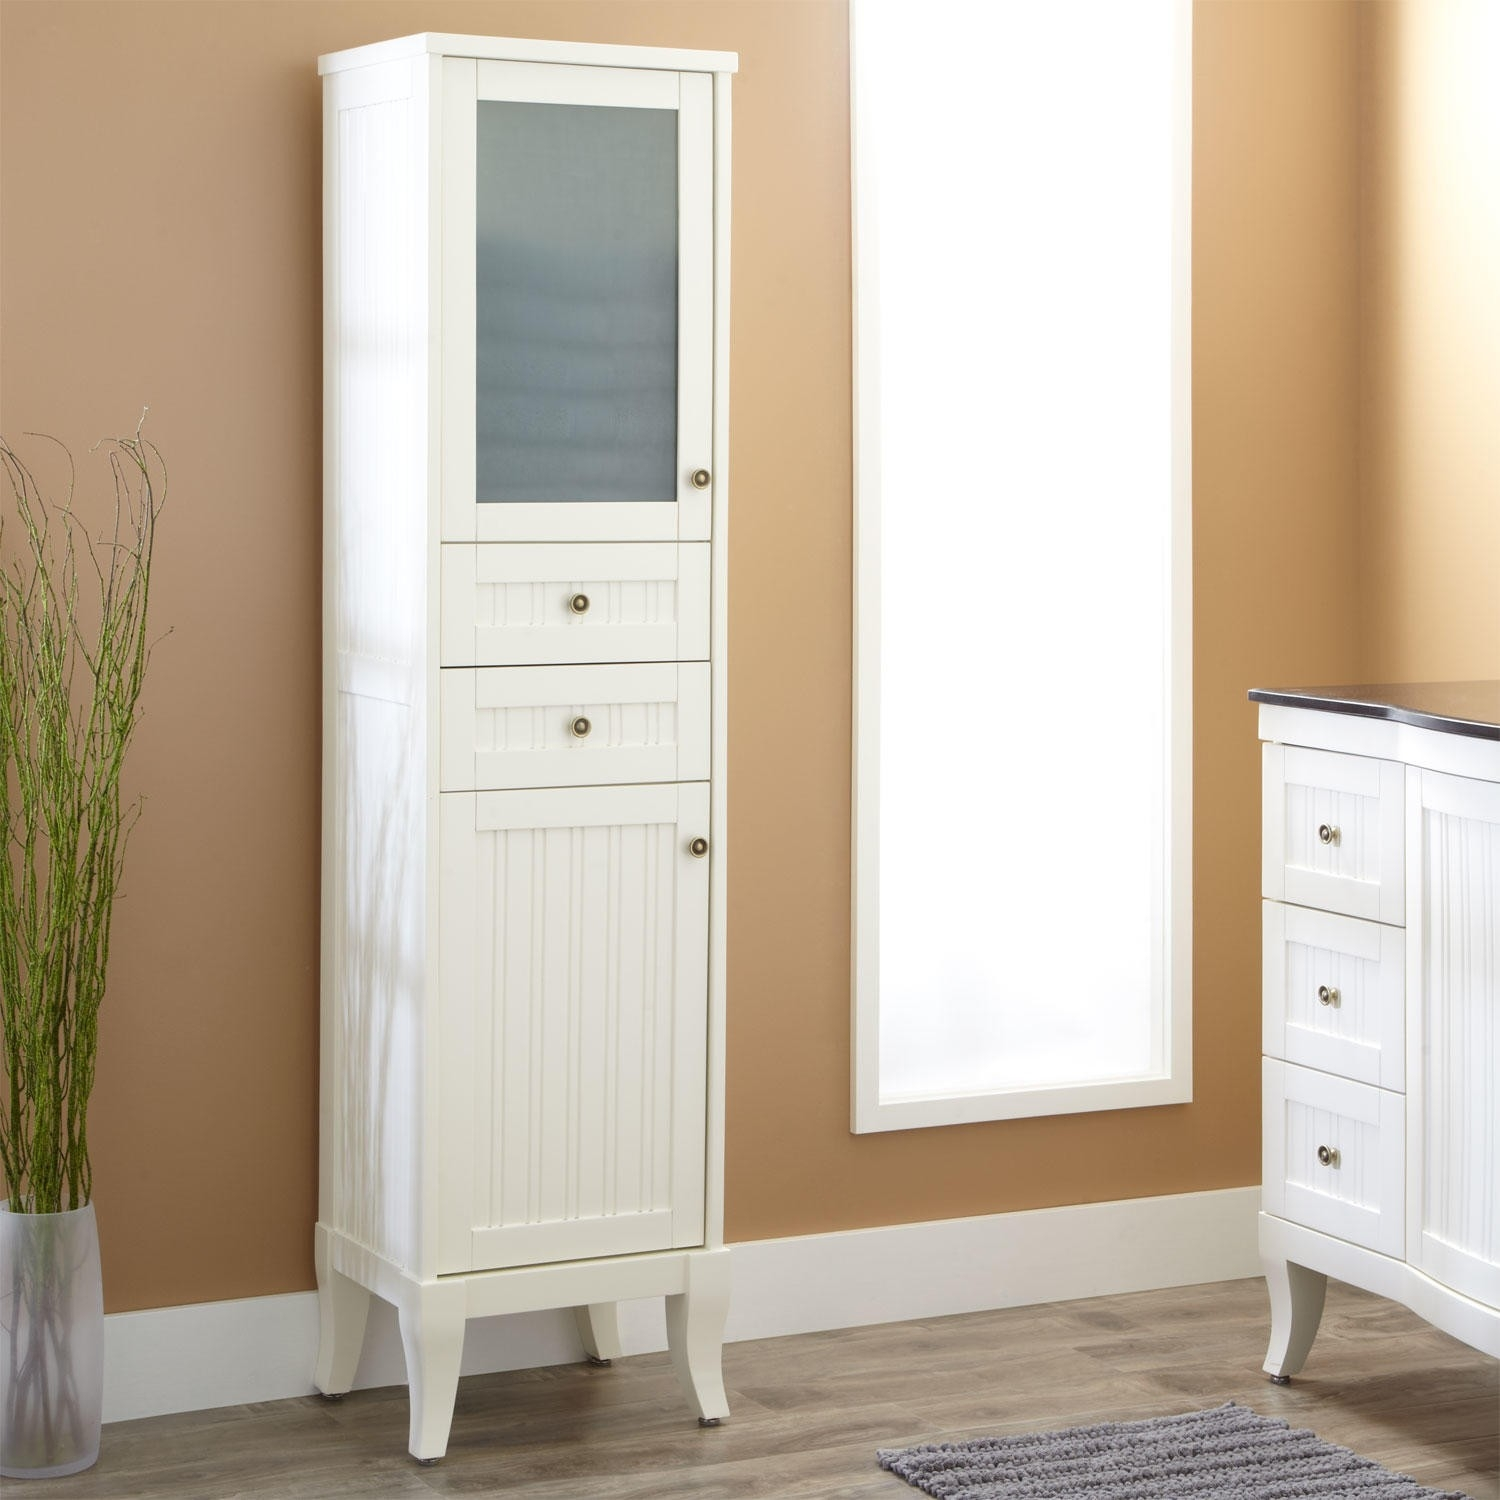 Linen Cabinets For The Bathroom